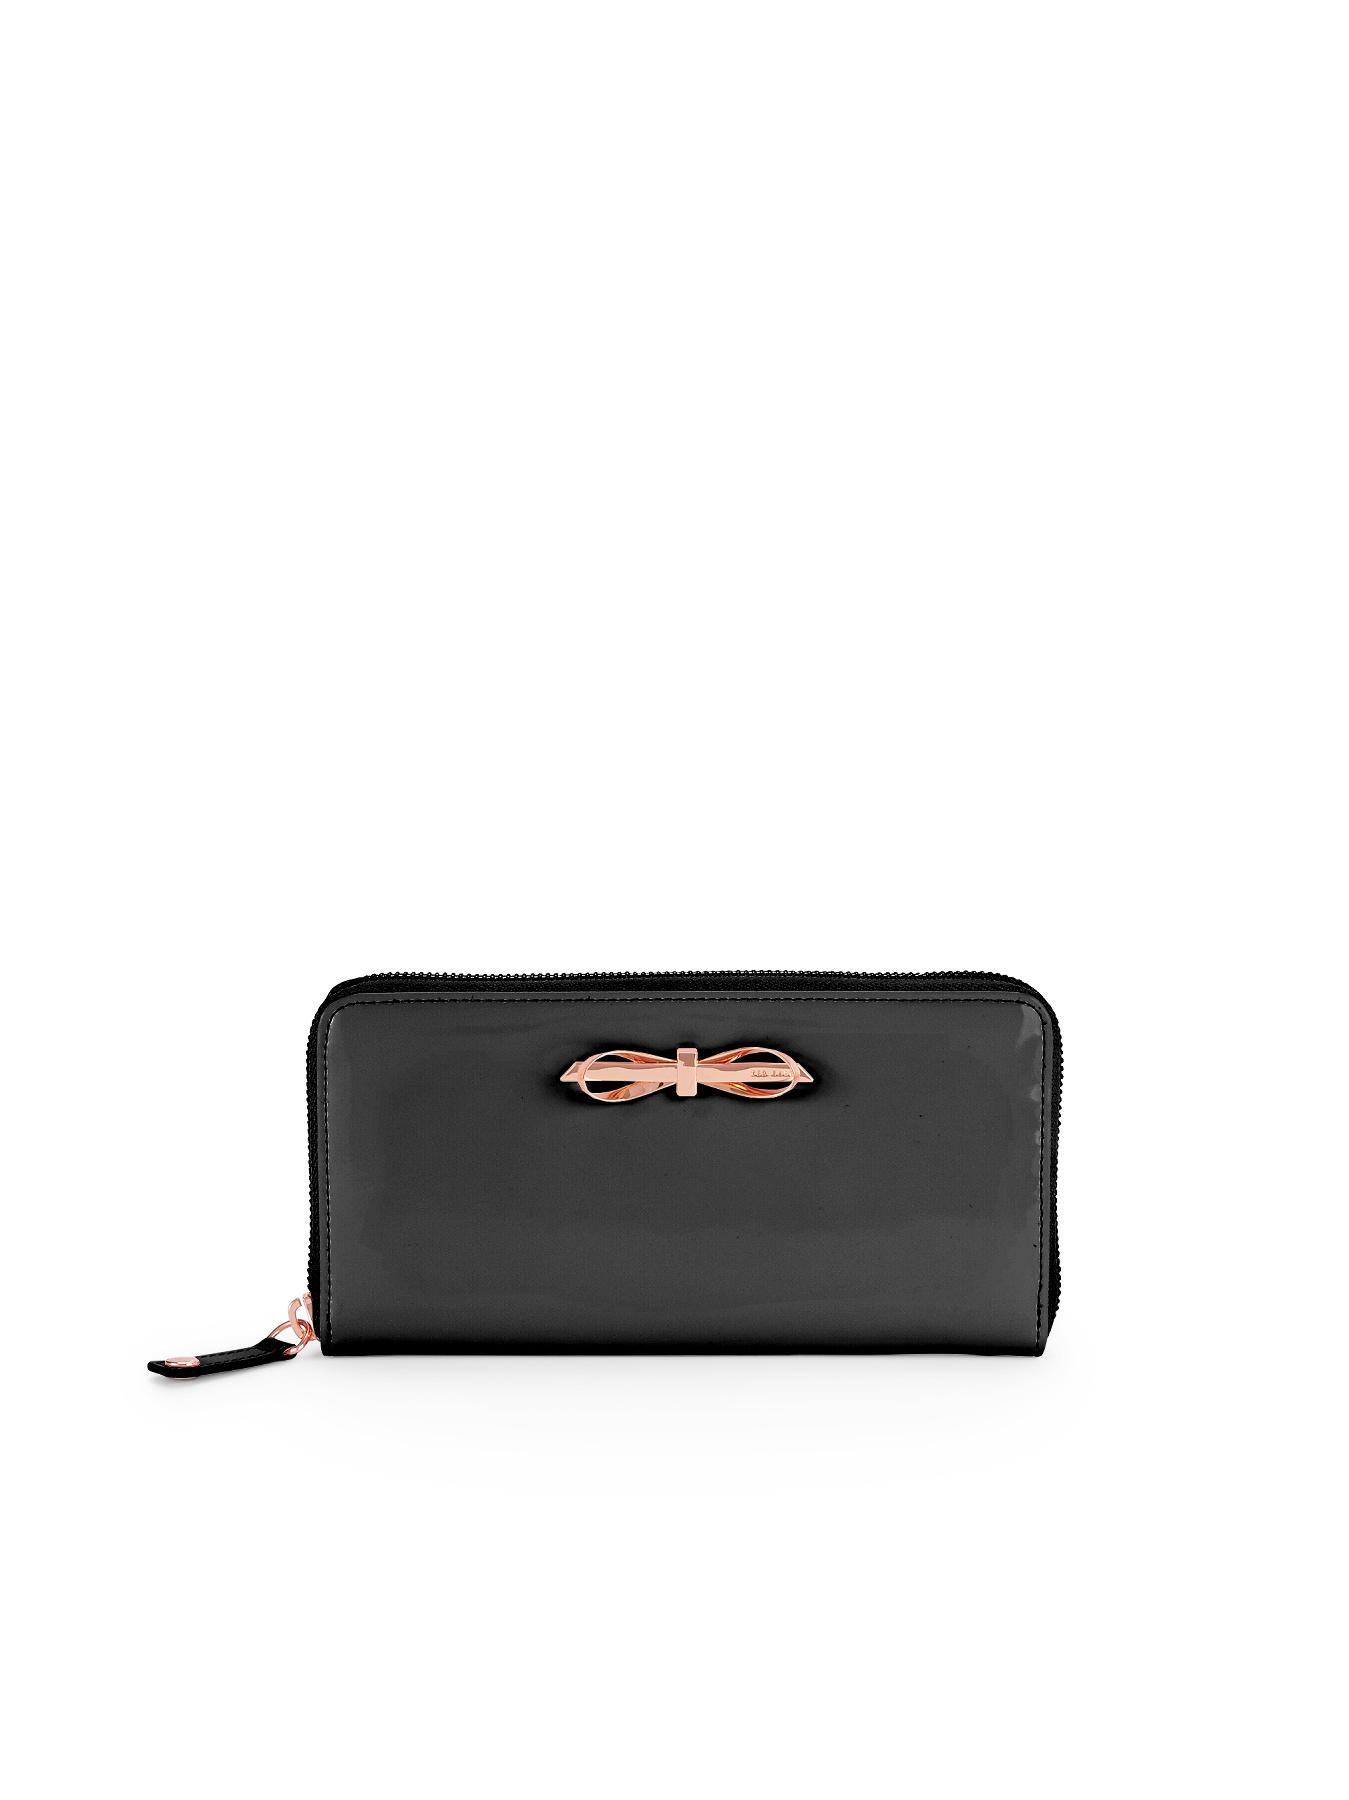 Ted Baker Bow Zip Around Purse - Black, Black